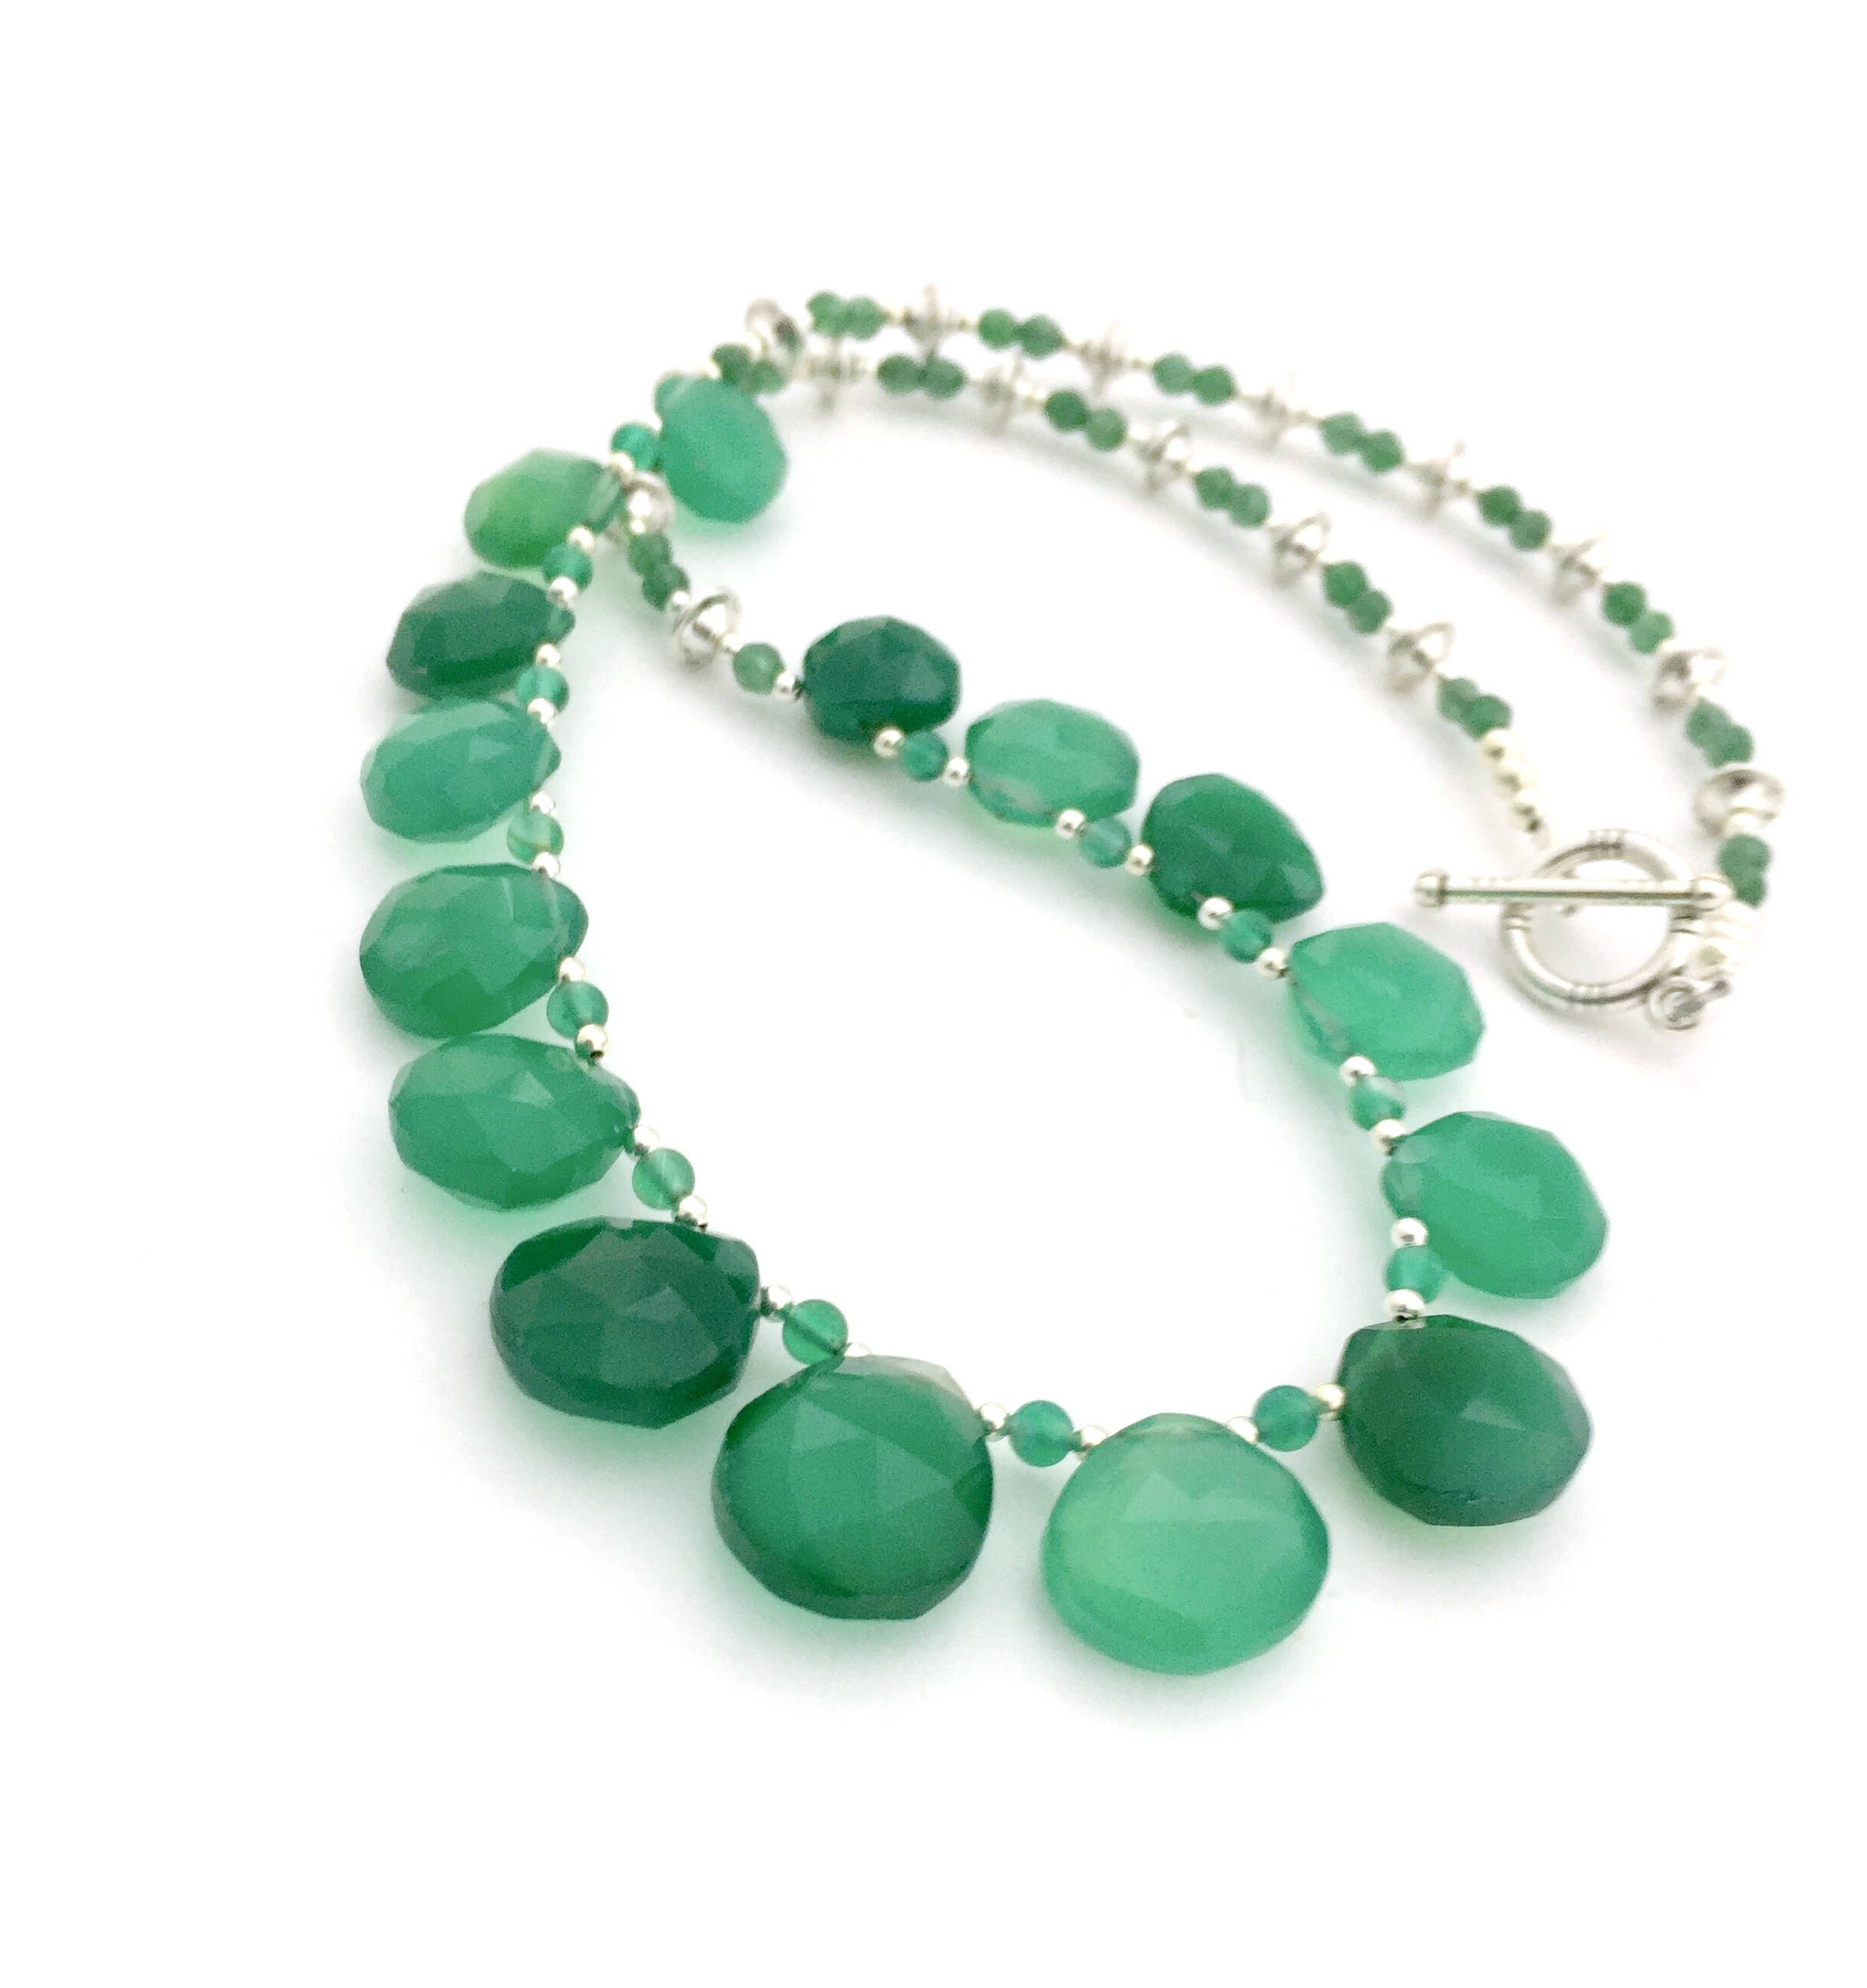 pearls pop by buy pearl paisley and necklace white emerald product green kritisha long onyx